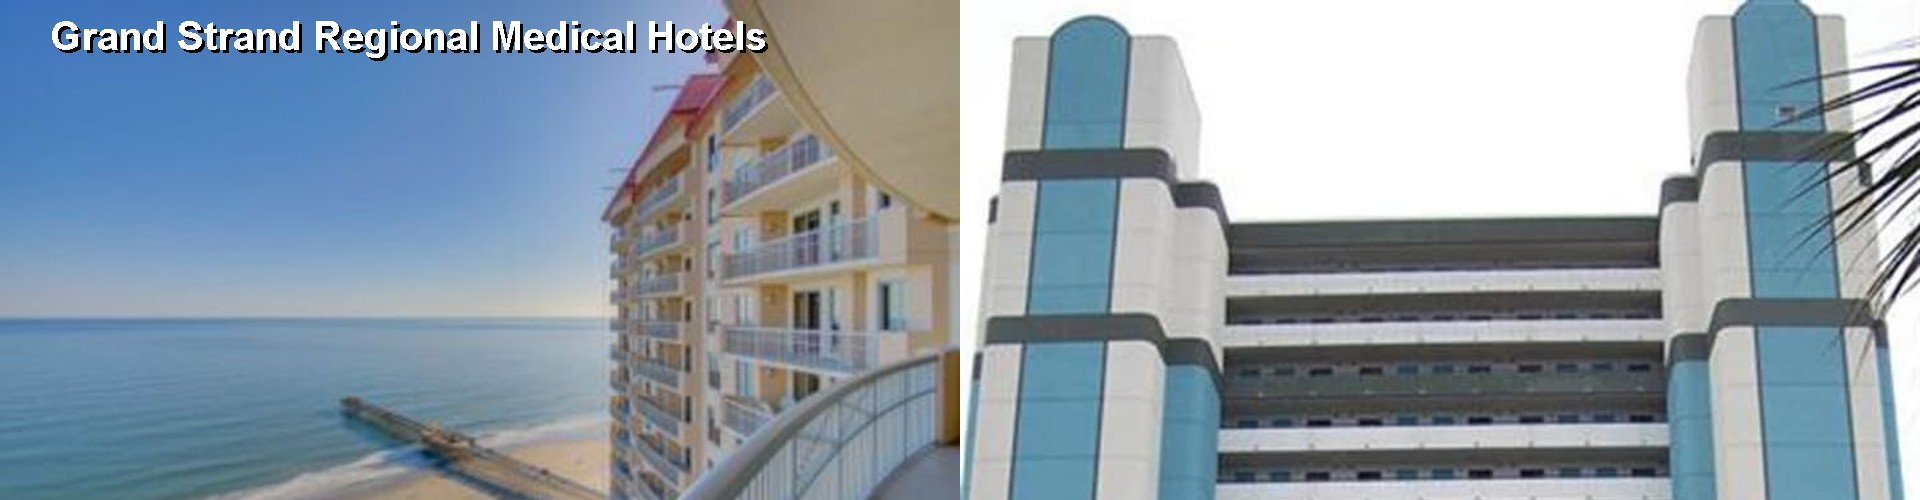 5 Best Hotels near Grand Strand Regional Medical